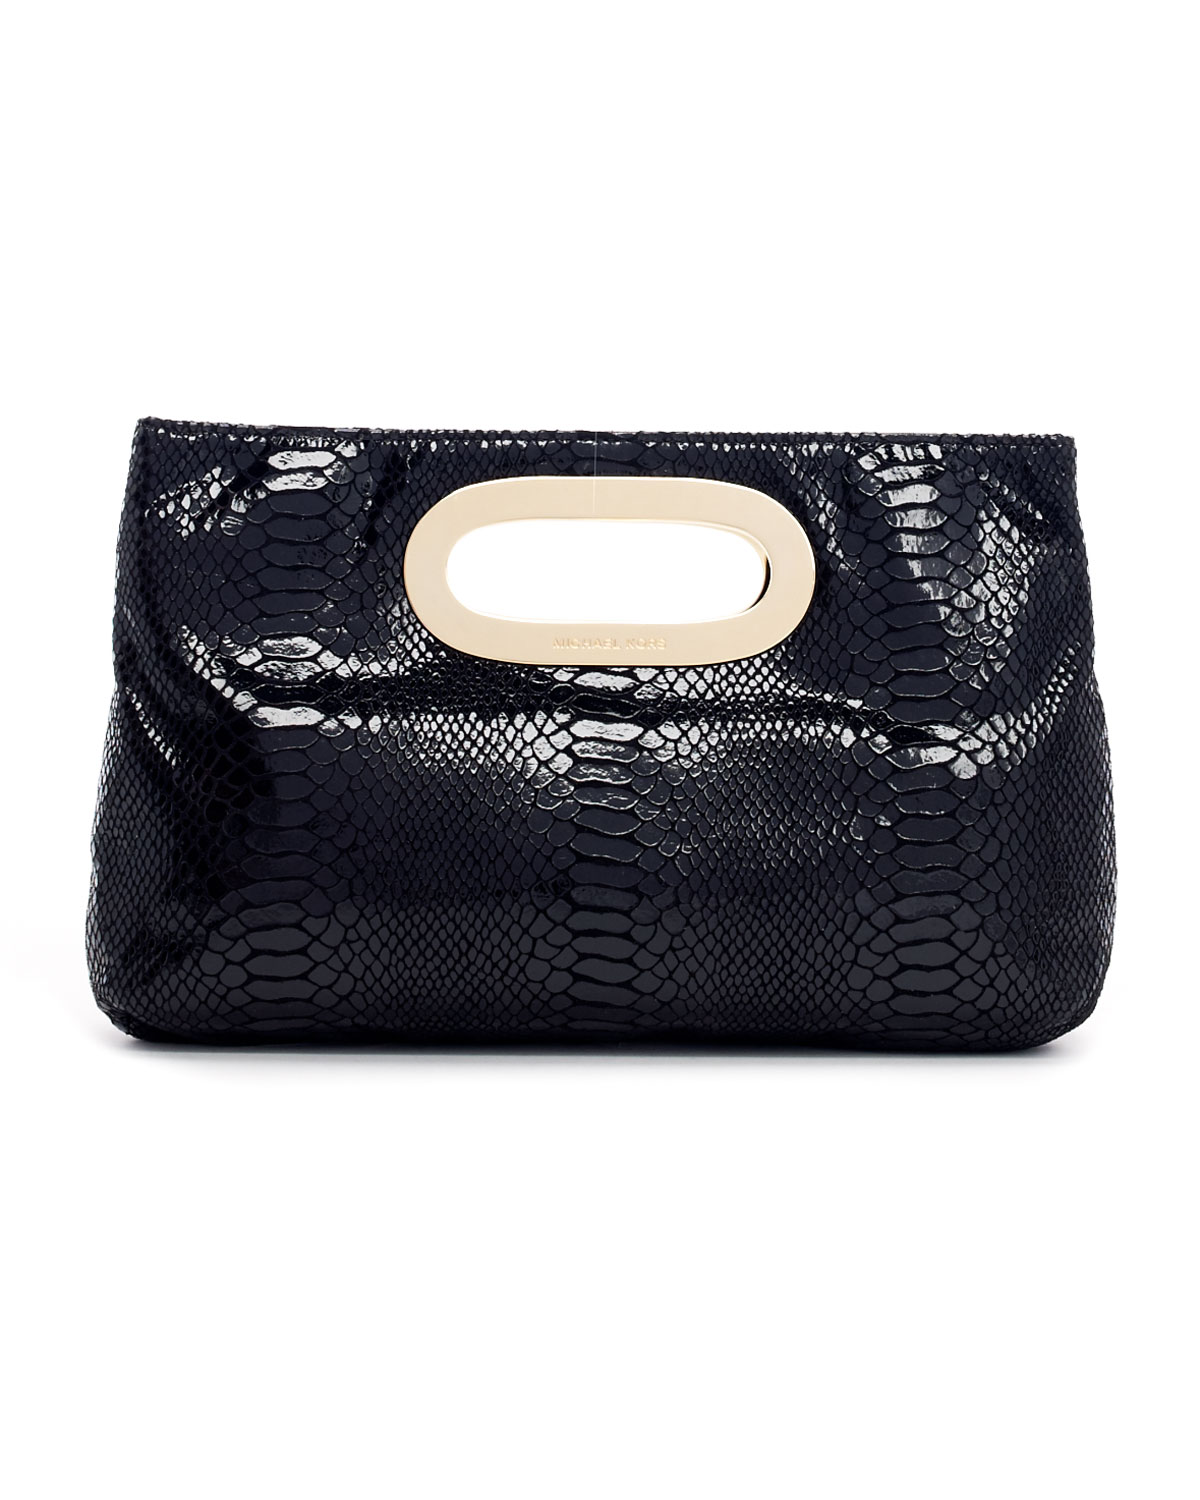 michael kors berkley patent pythonembossed clutch in black. Black Bedroom Furniture Sets. Home Design Ideas